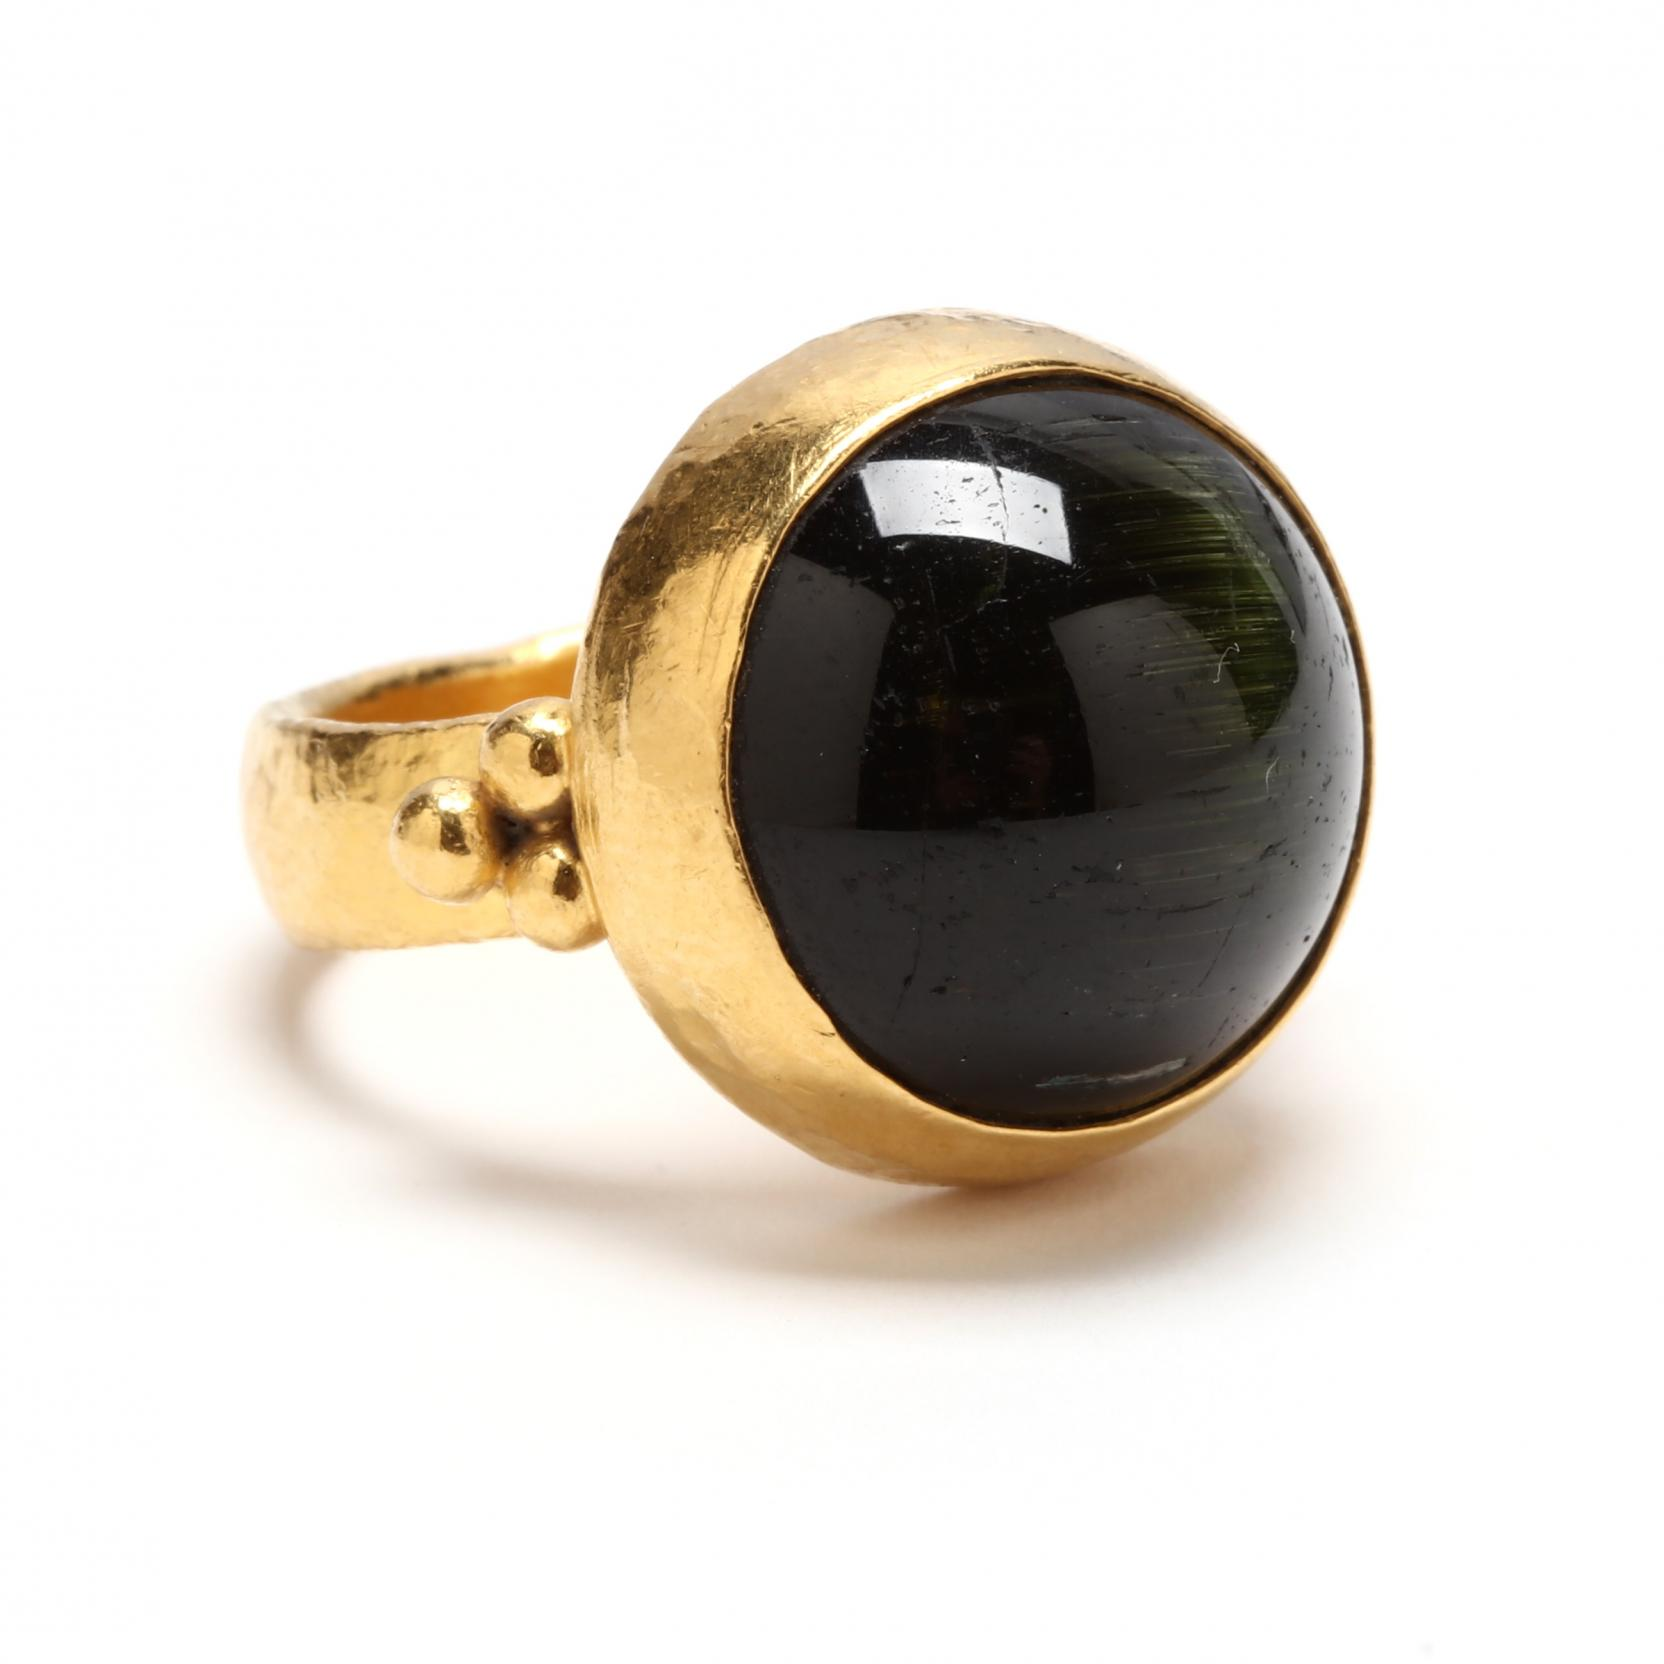 24kt-cat-s-eye-tourmaline-ring-gurhan